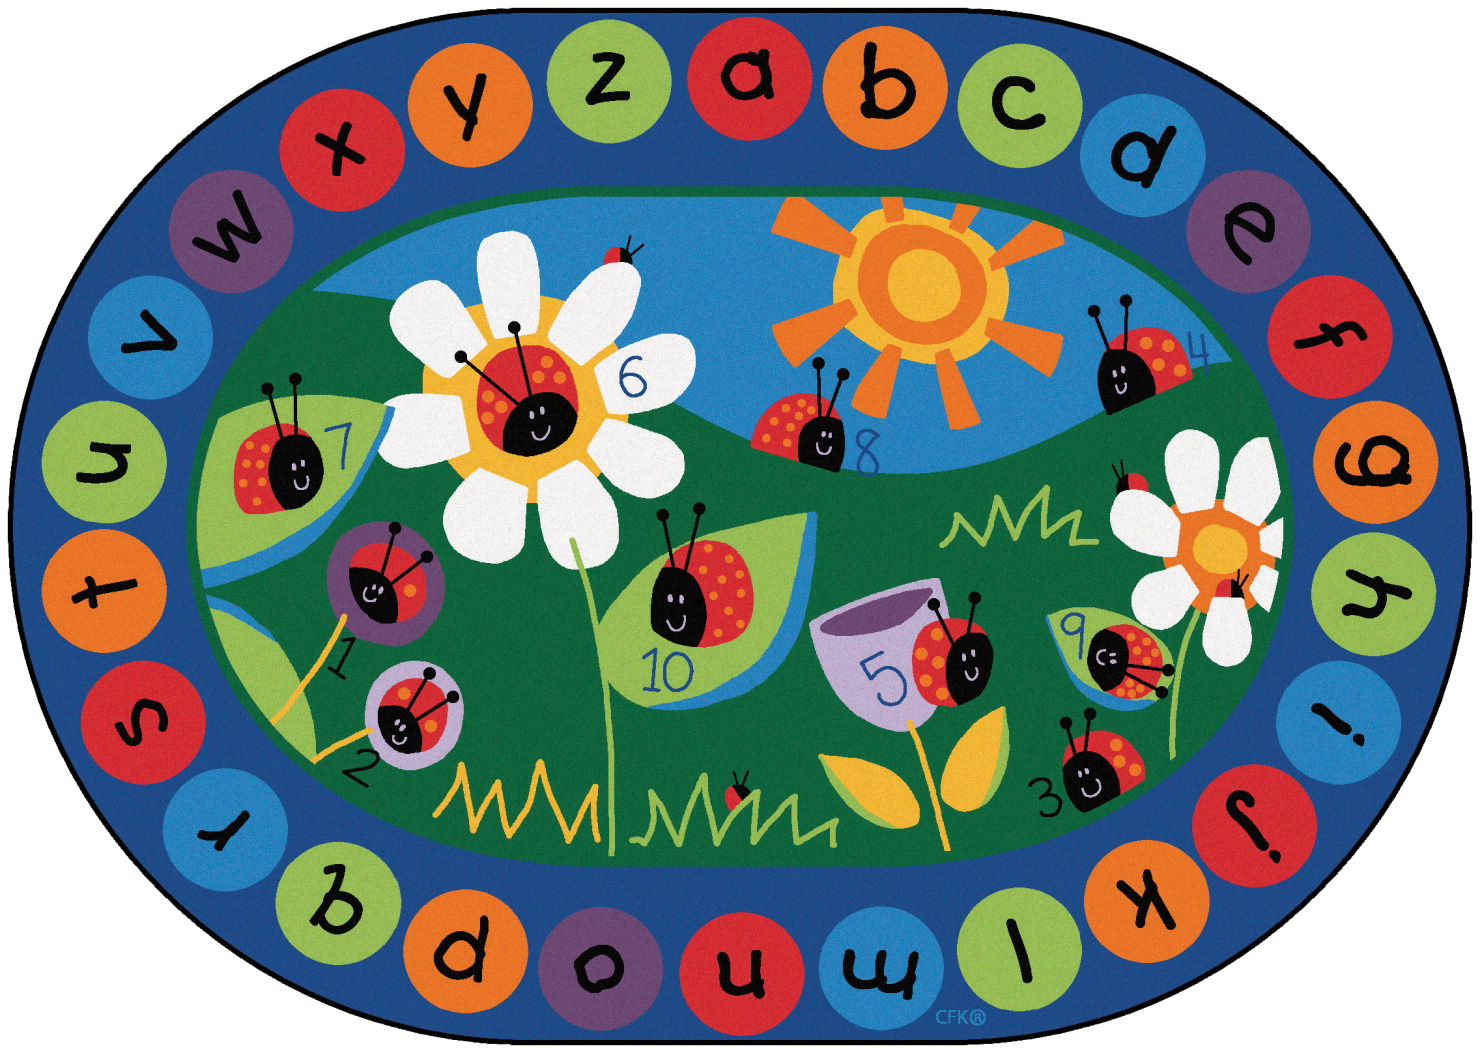 Carpets For Kids Ladybug Circletime Rug, 8 Feet 3 Inches x 11 Feet 8 Inches, Oval